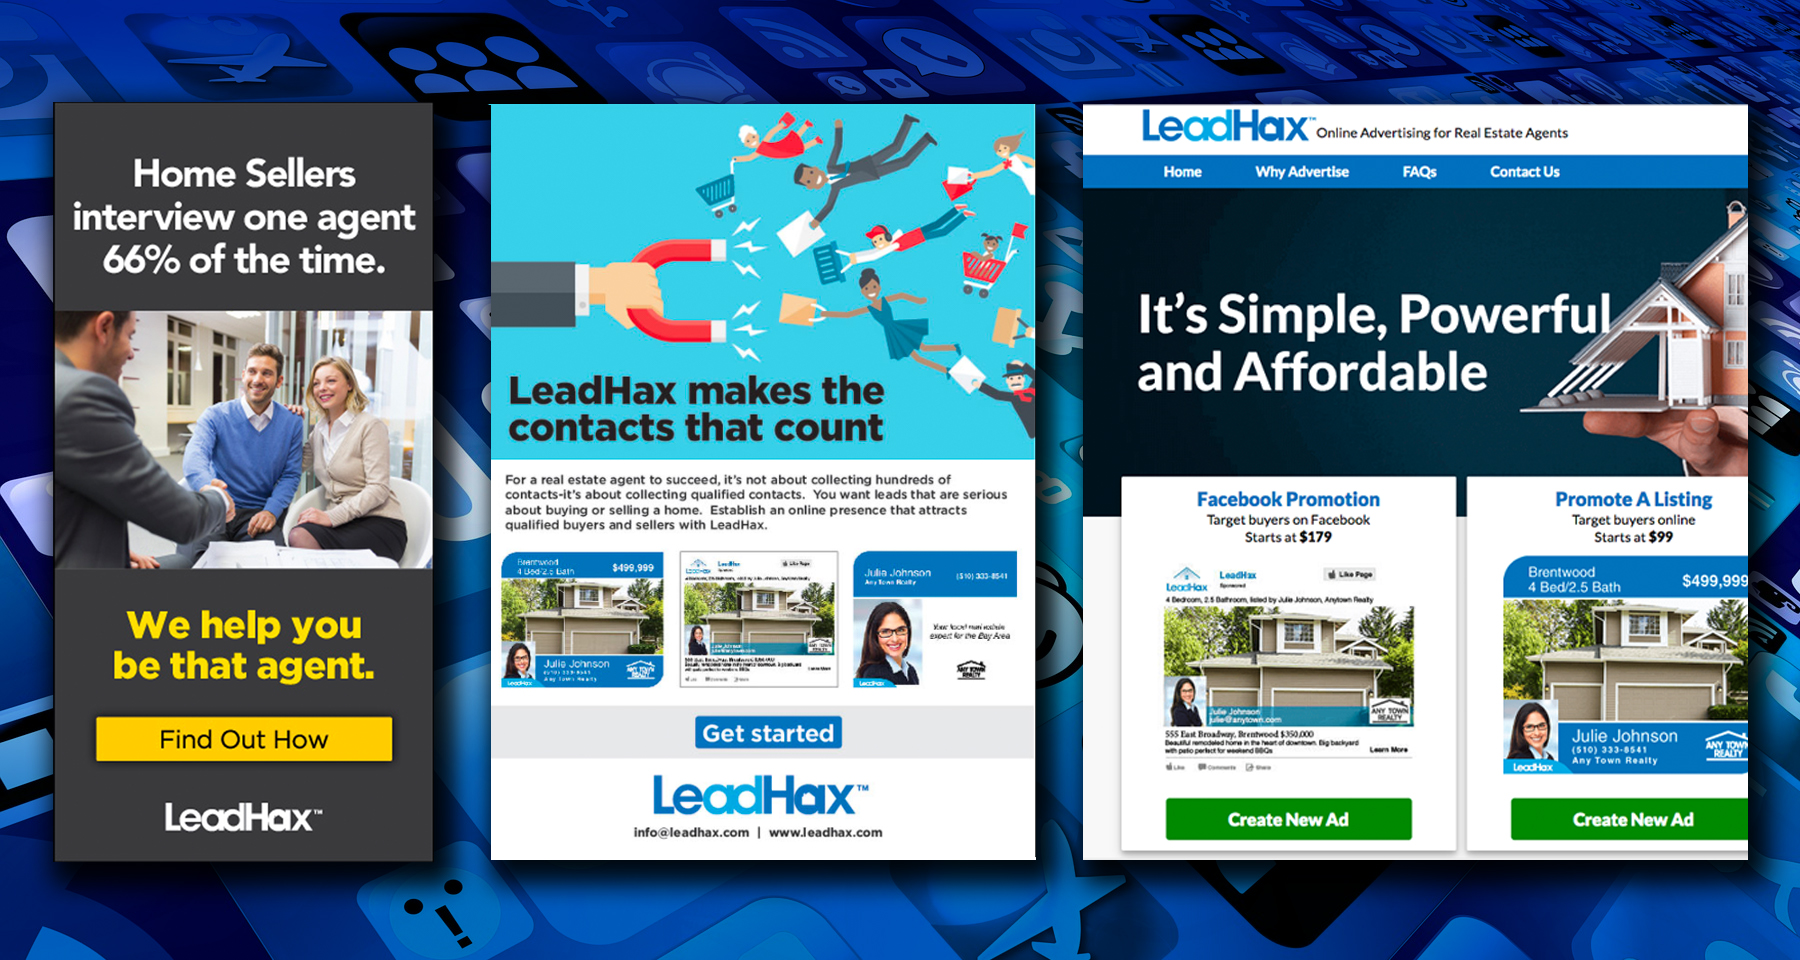 Bay Area News Group launches digital advertising tool for Realtors